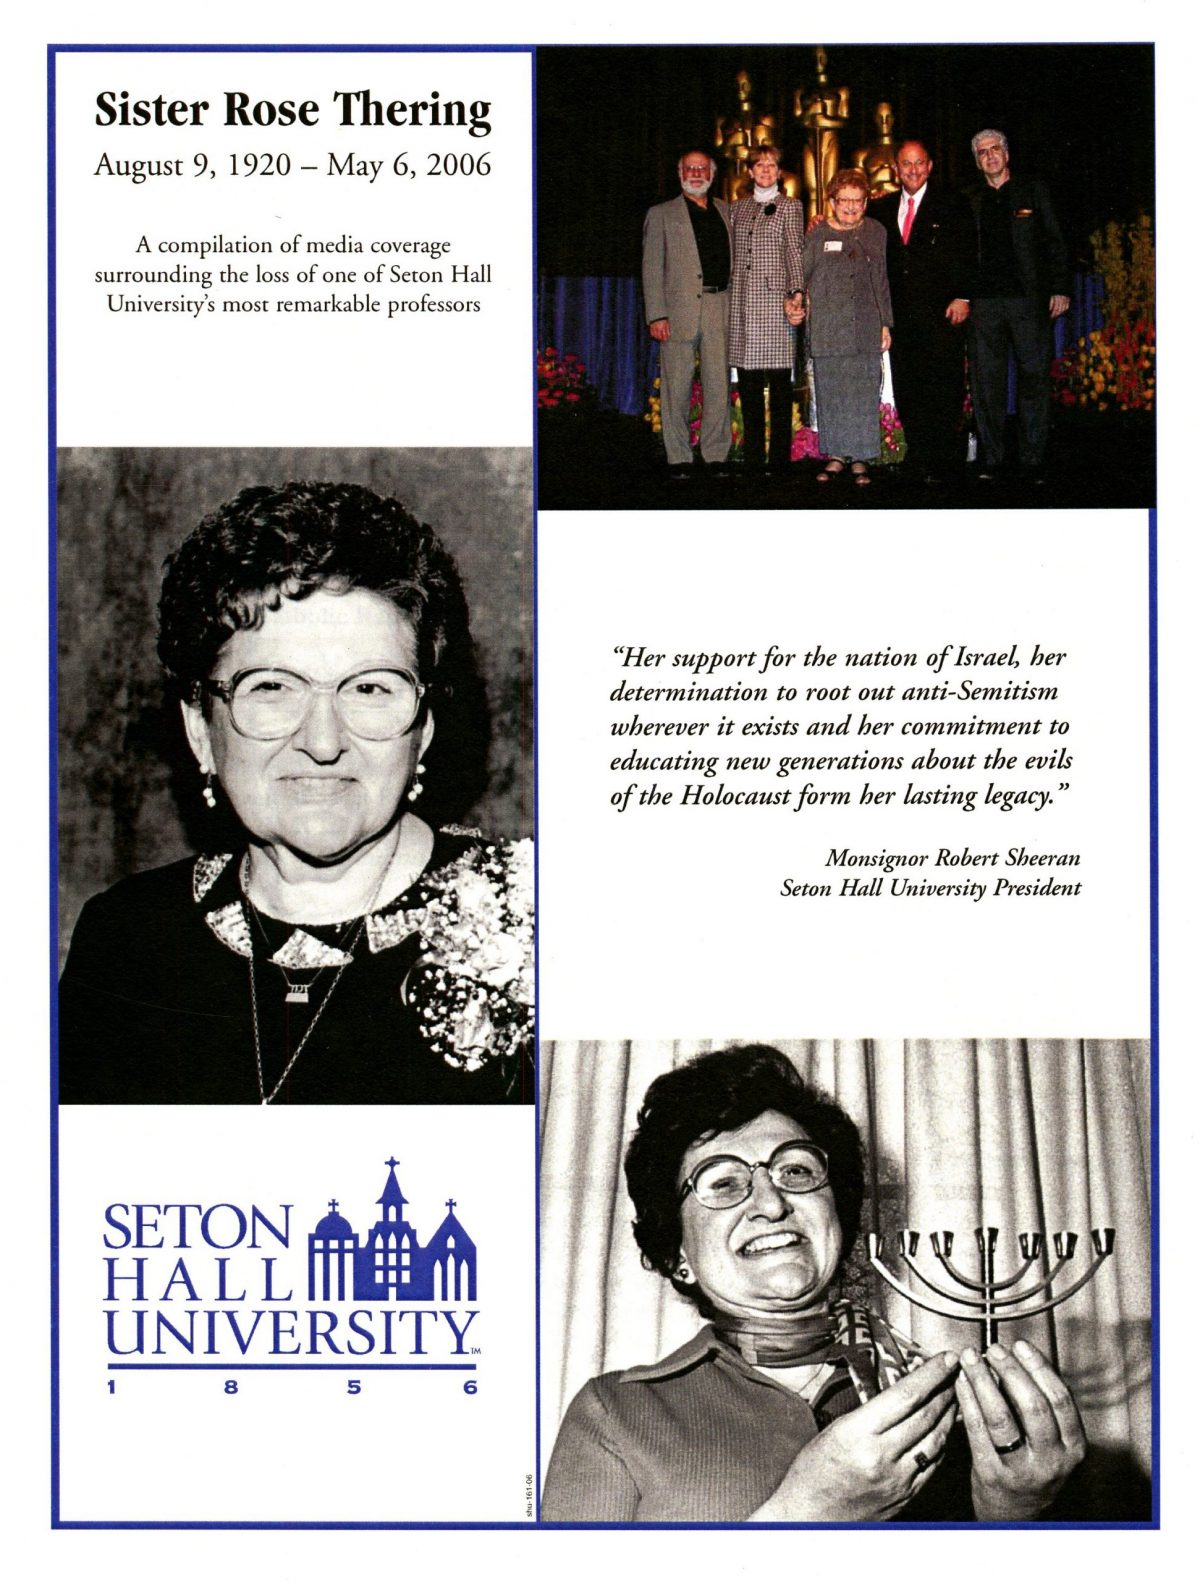 A graphic consisting of images and text honoring and remembering Sister Rose Thering.